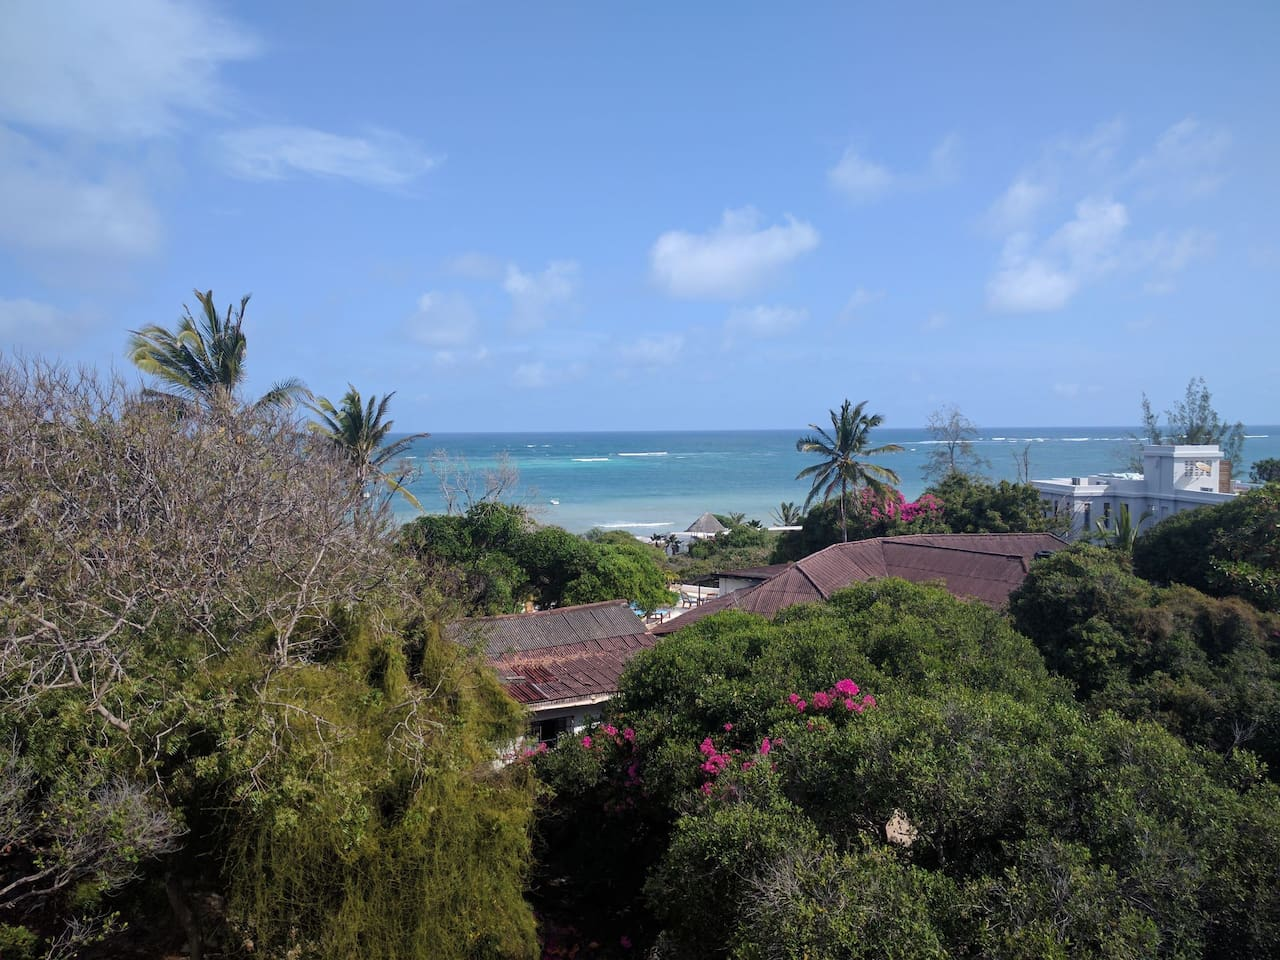 Sea View from the roof of kabi house